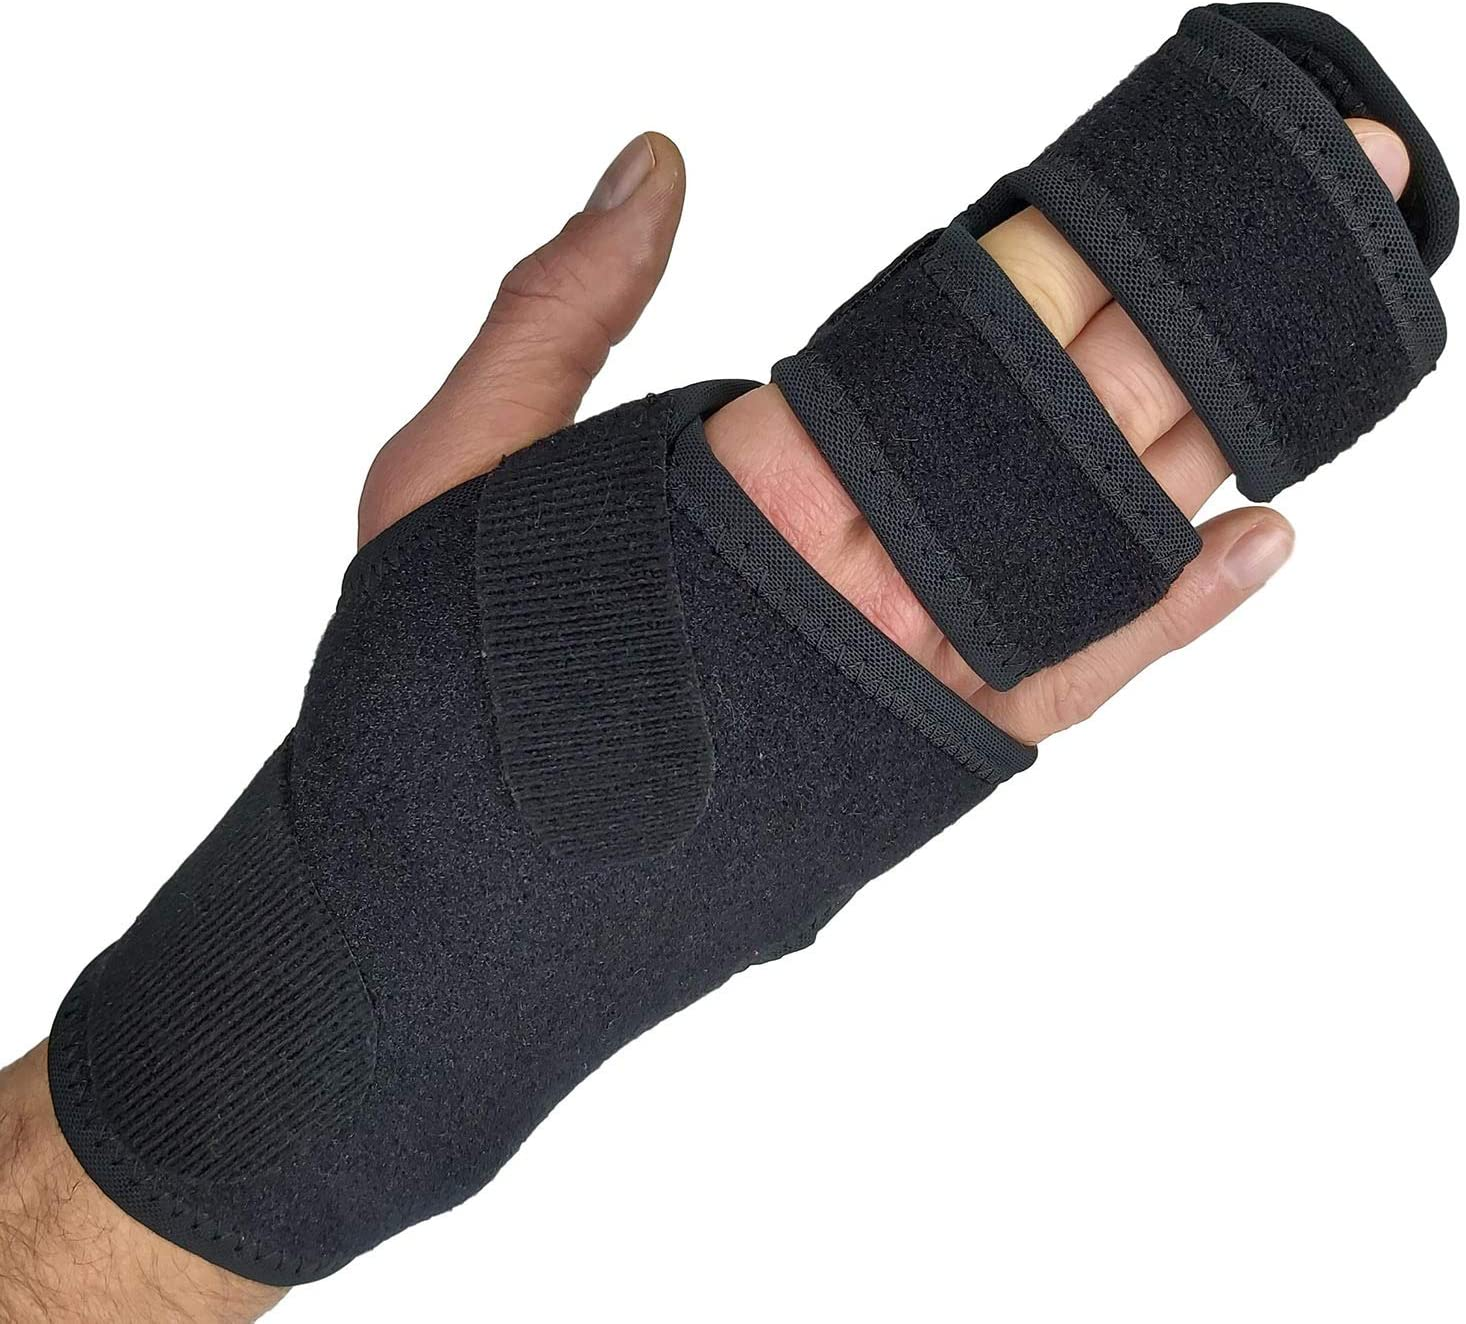 Trigger Finger Splint Finger Brace – Supports Two or Three Fingers. Help Broken Fingers Hand Contractures, Arthritis, Tendonitis, Mallet Fingers or Hand Splint for Metacarpal Fractures (Right - S/Med): Health & Personal Care